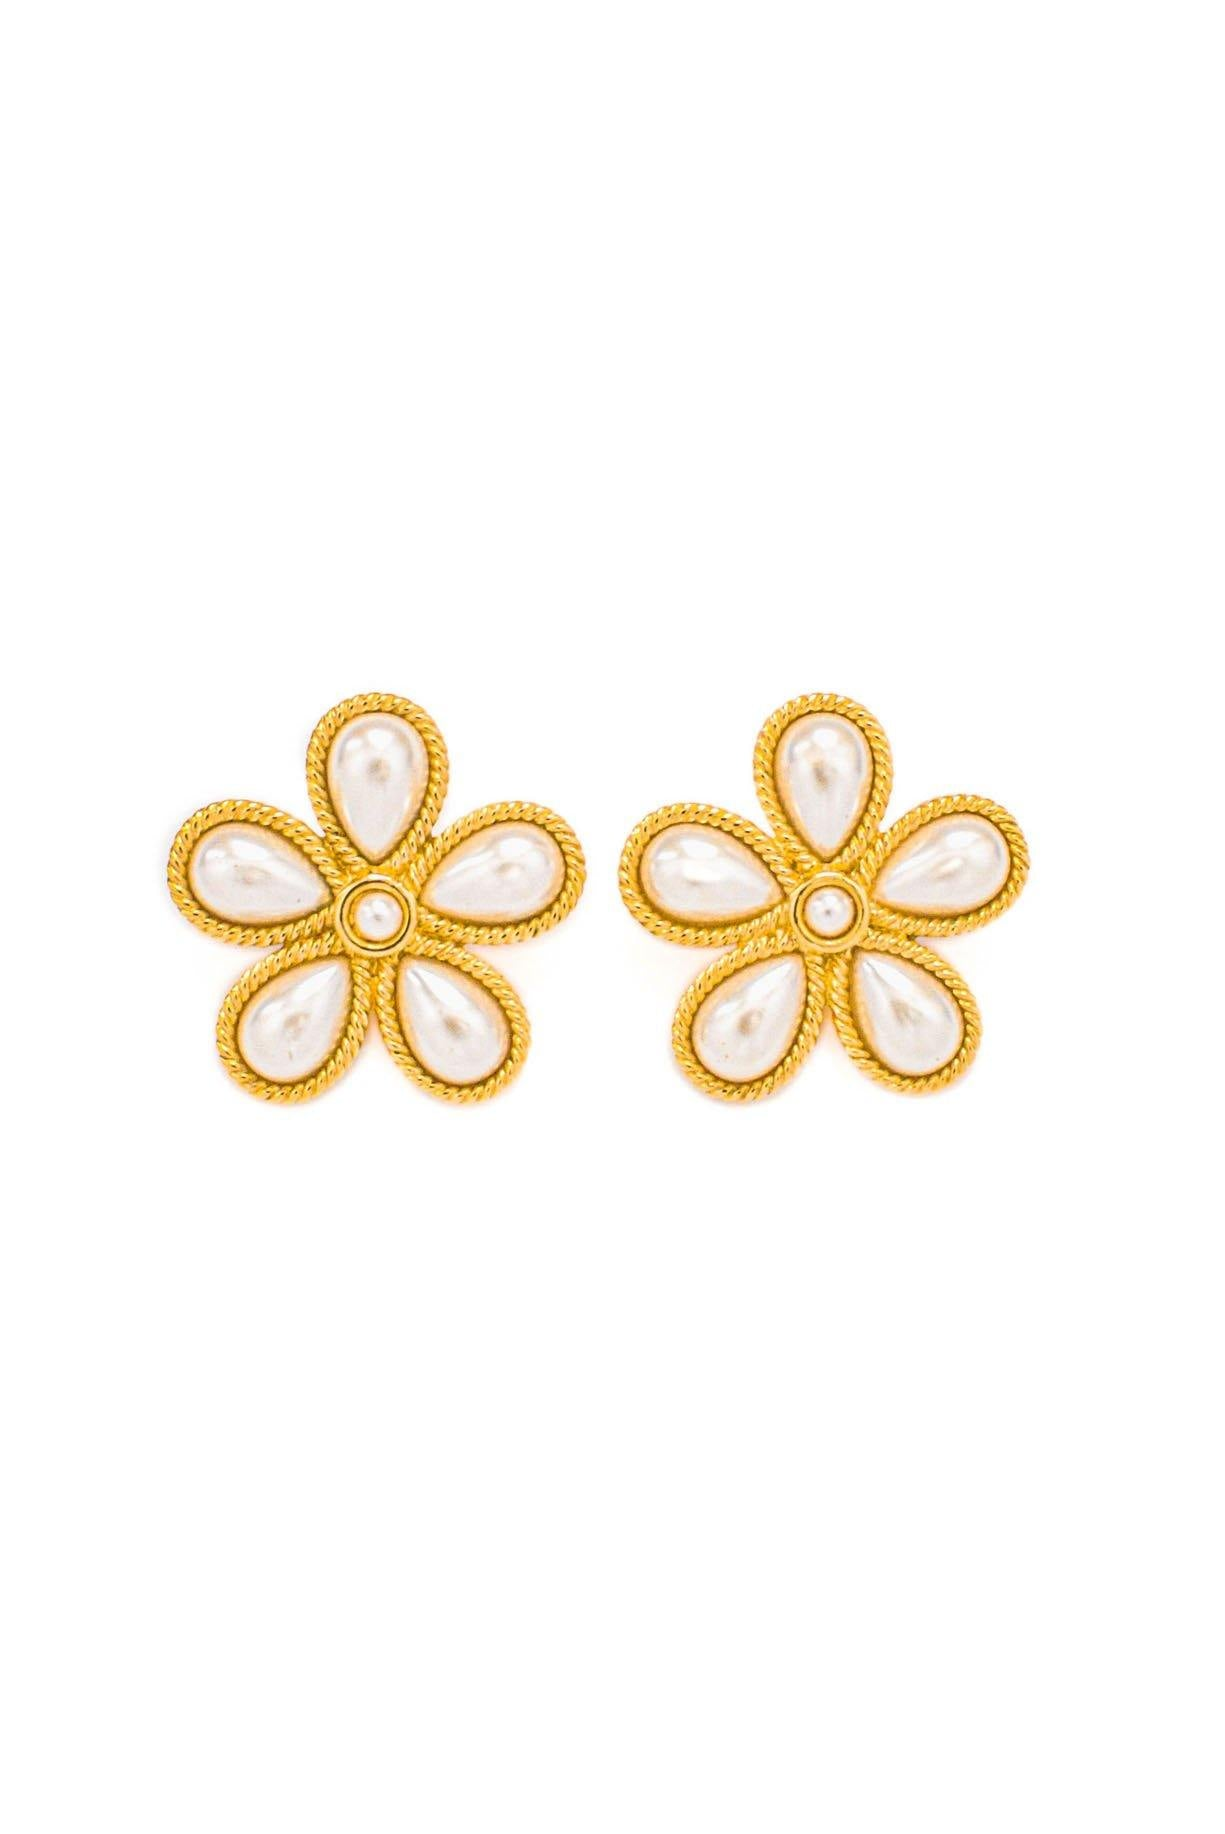 Vintage Pearly Gold Clip-on Flower Earrings from Sweet and Spark